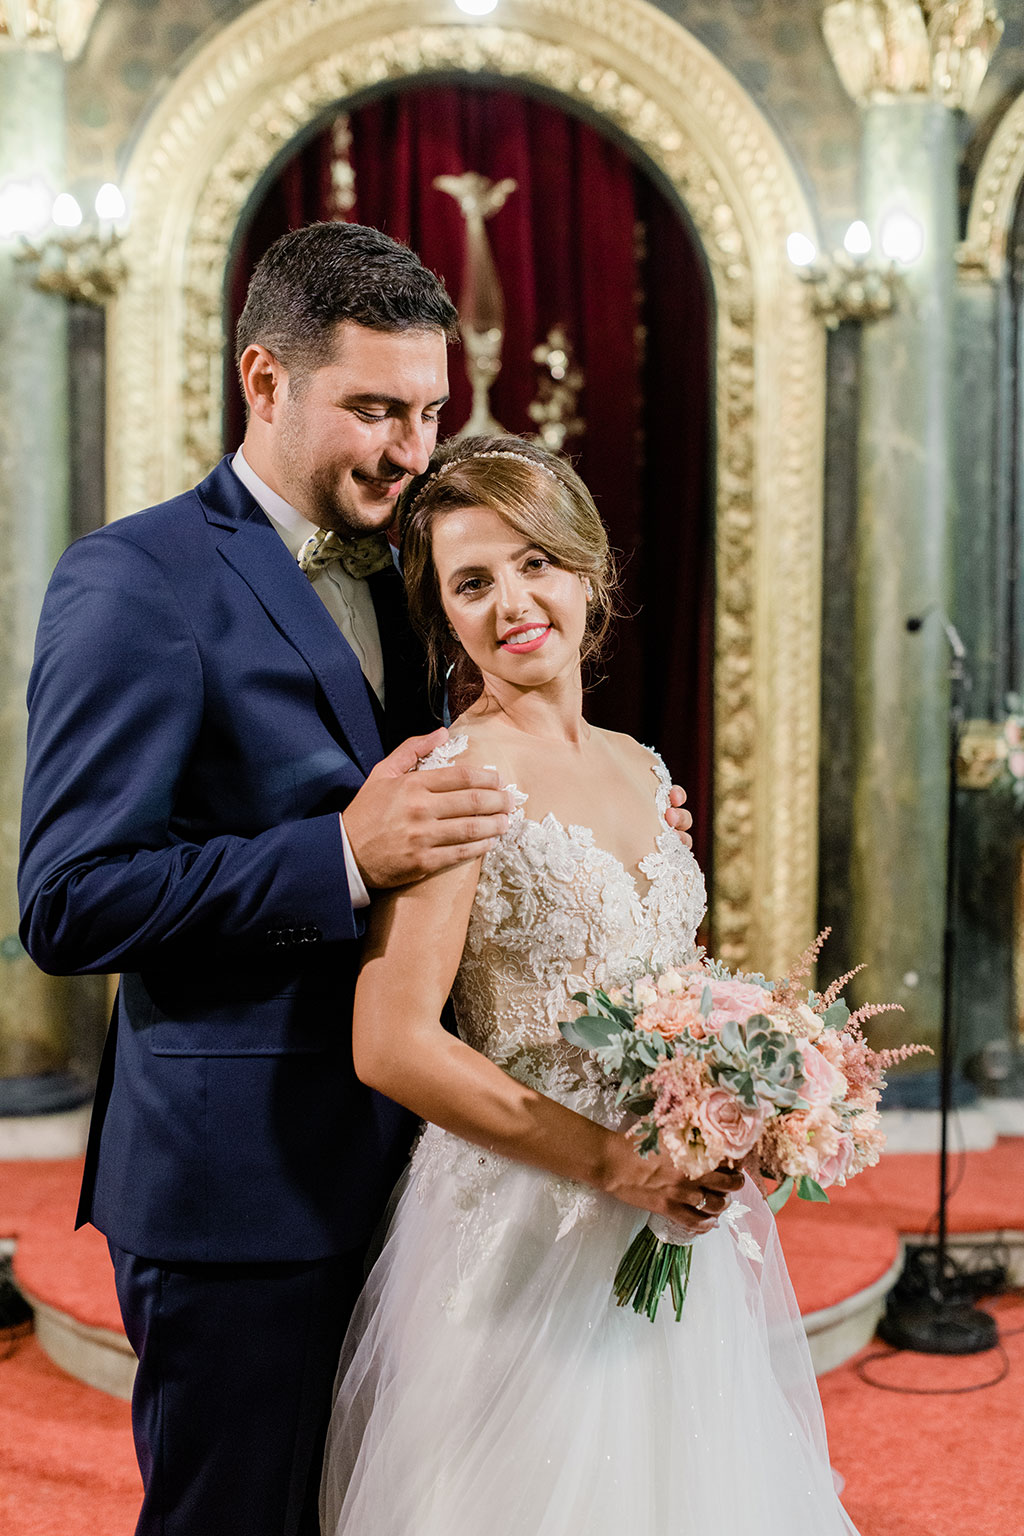 A sweet portrait for my couple in an elegant wedding in thessaloniki